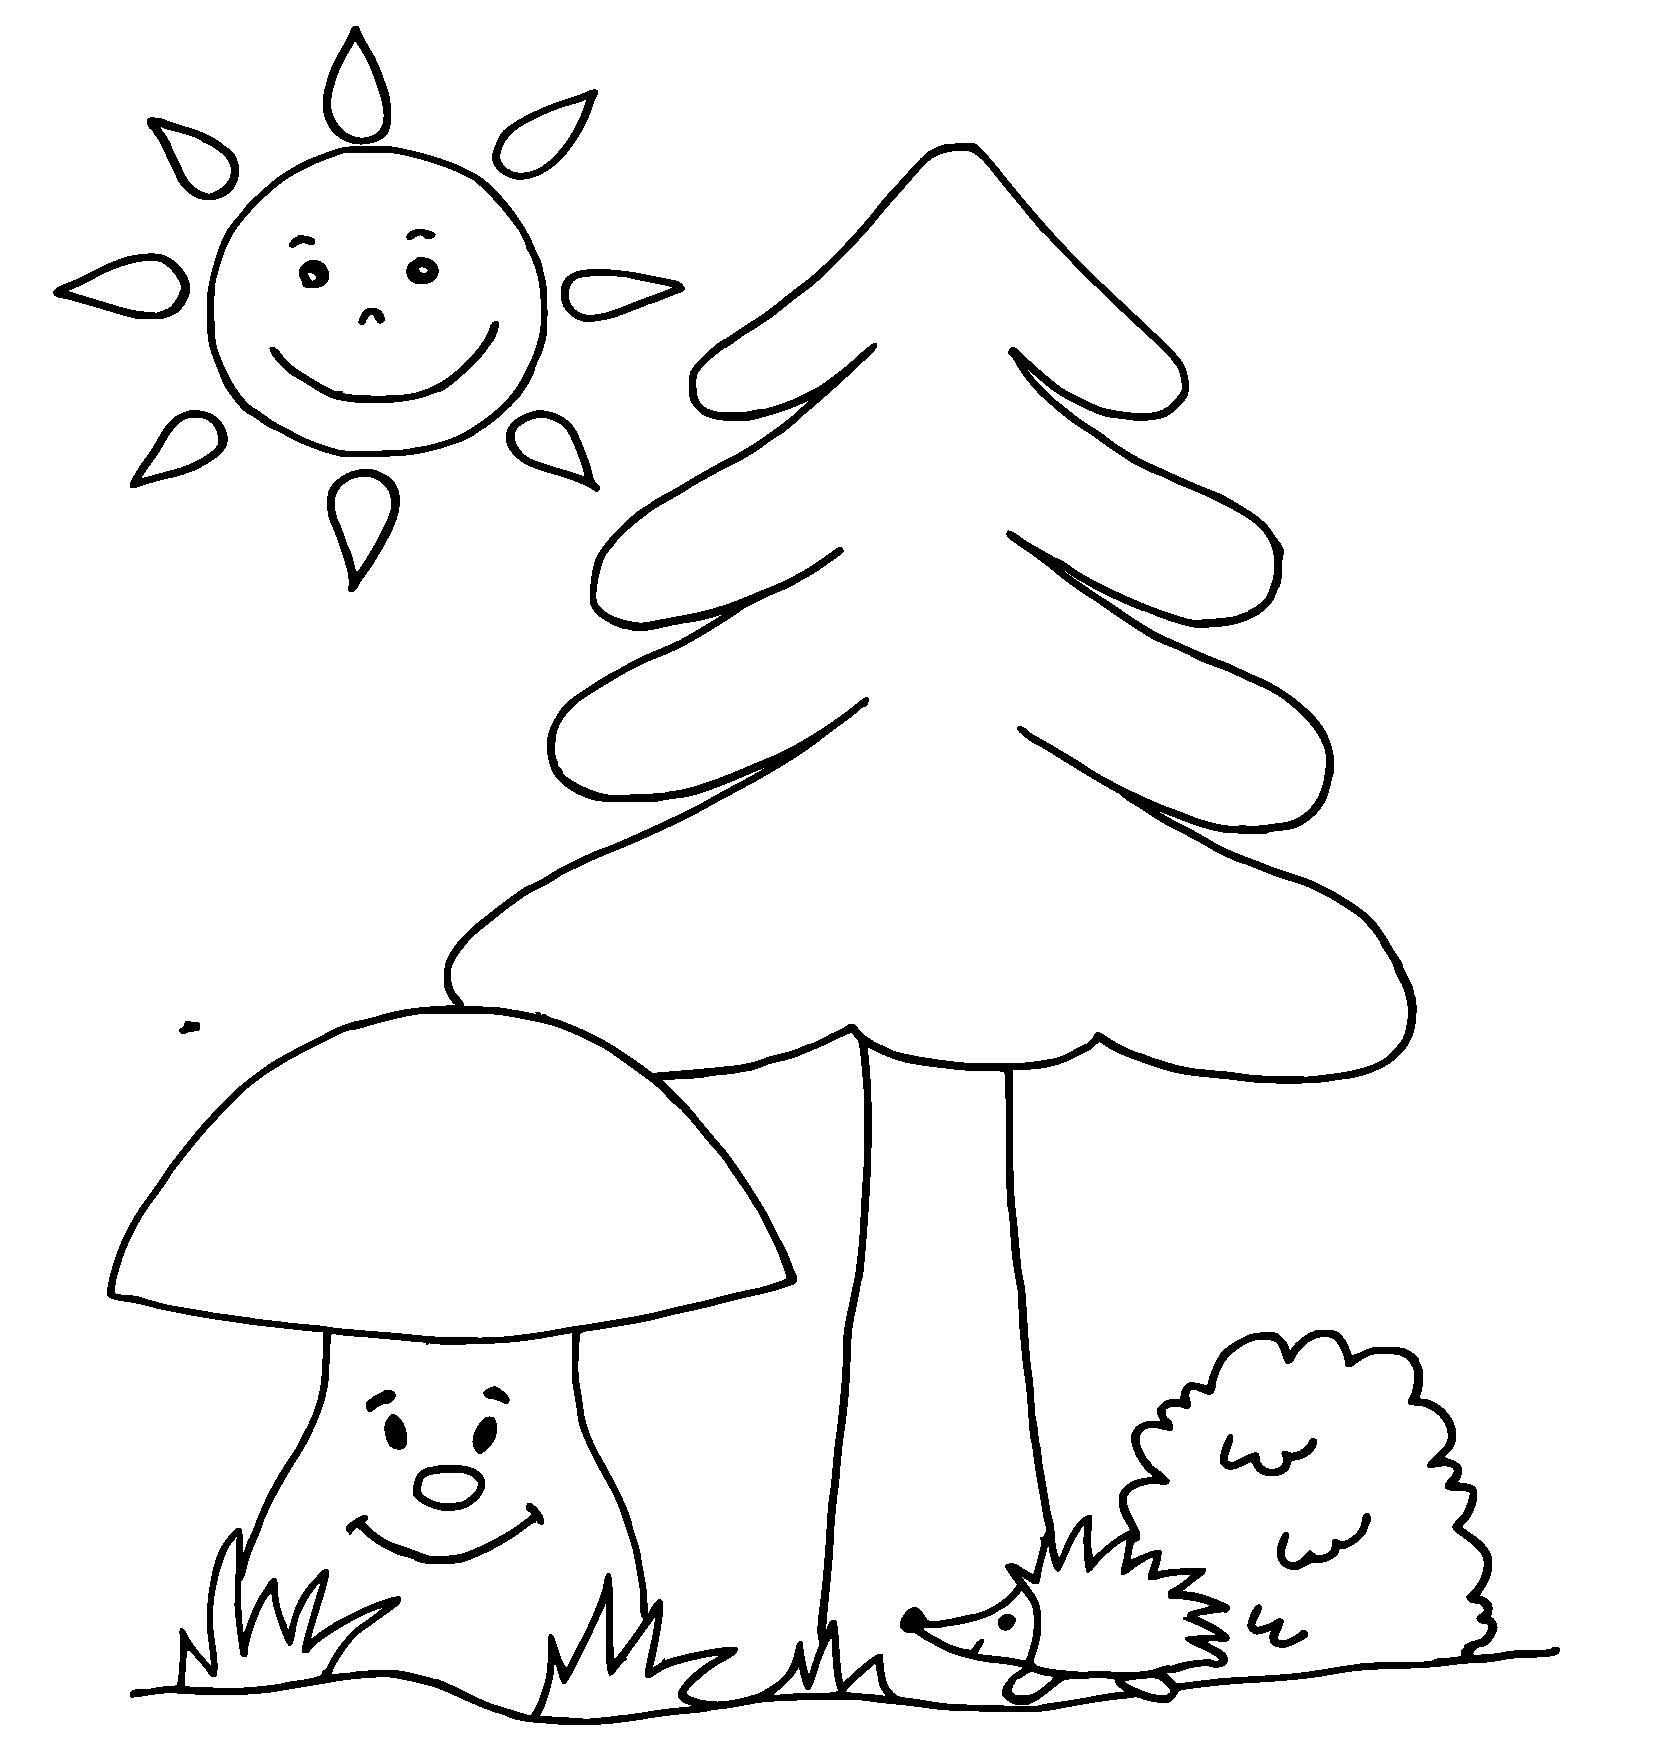 V Lese Coloring Pages Paper Dolls Crafts